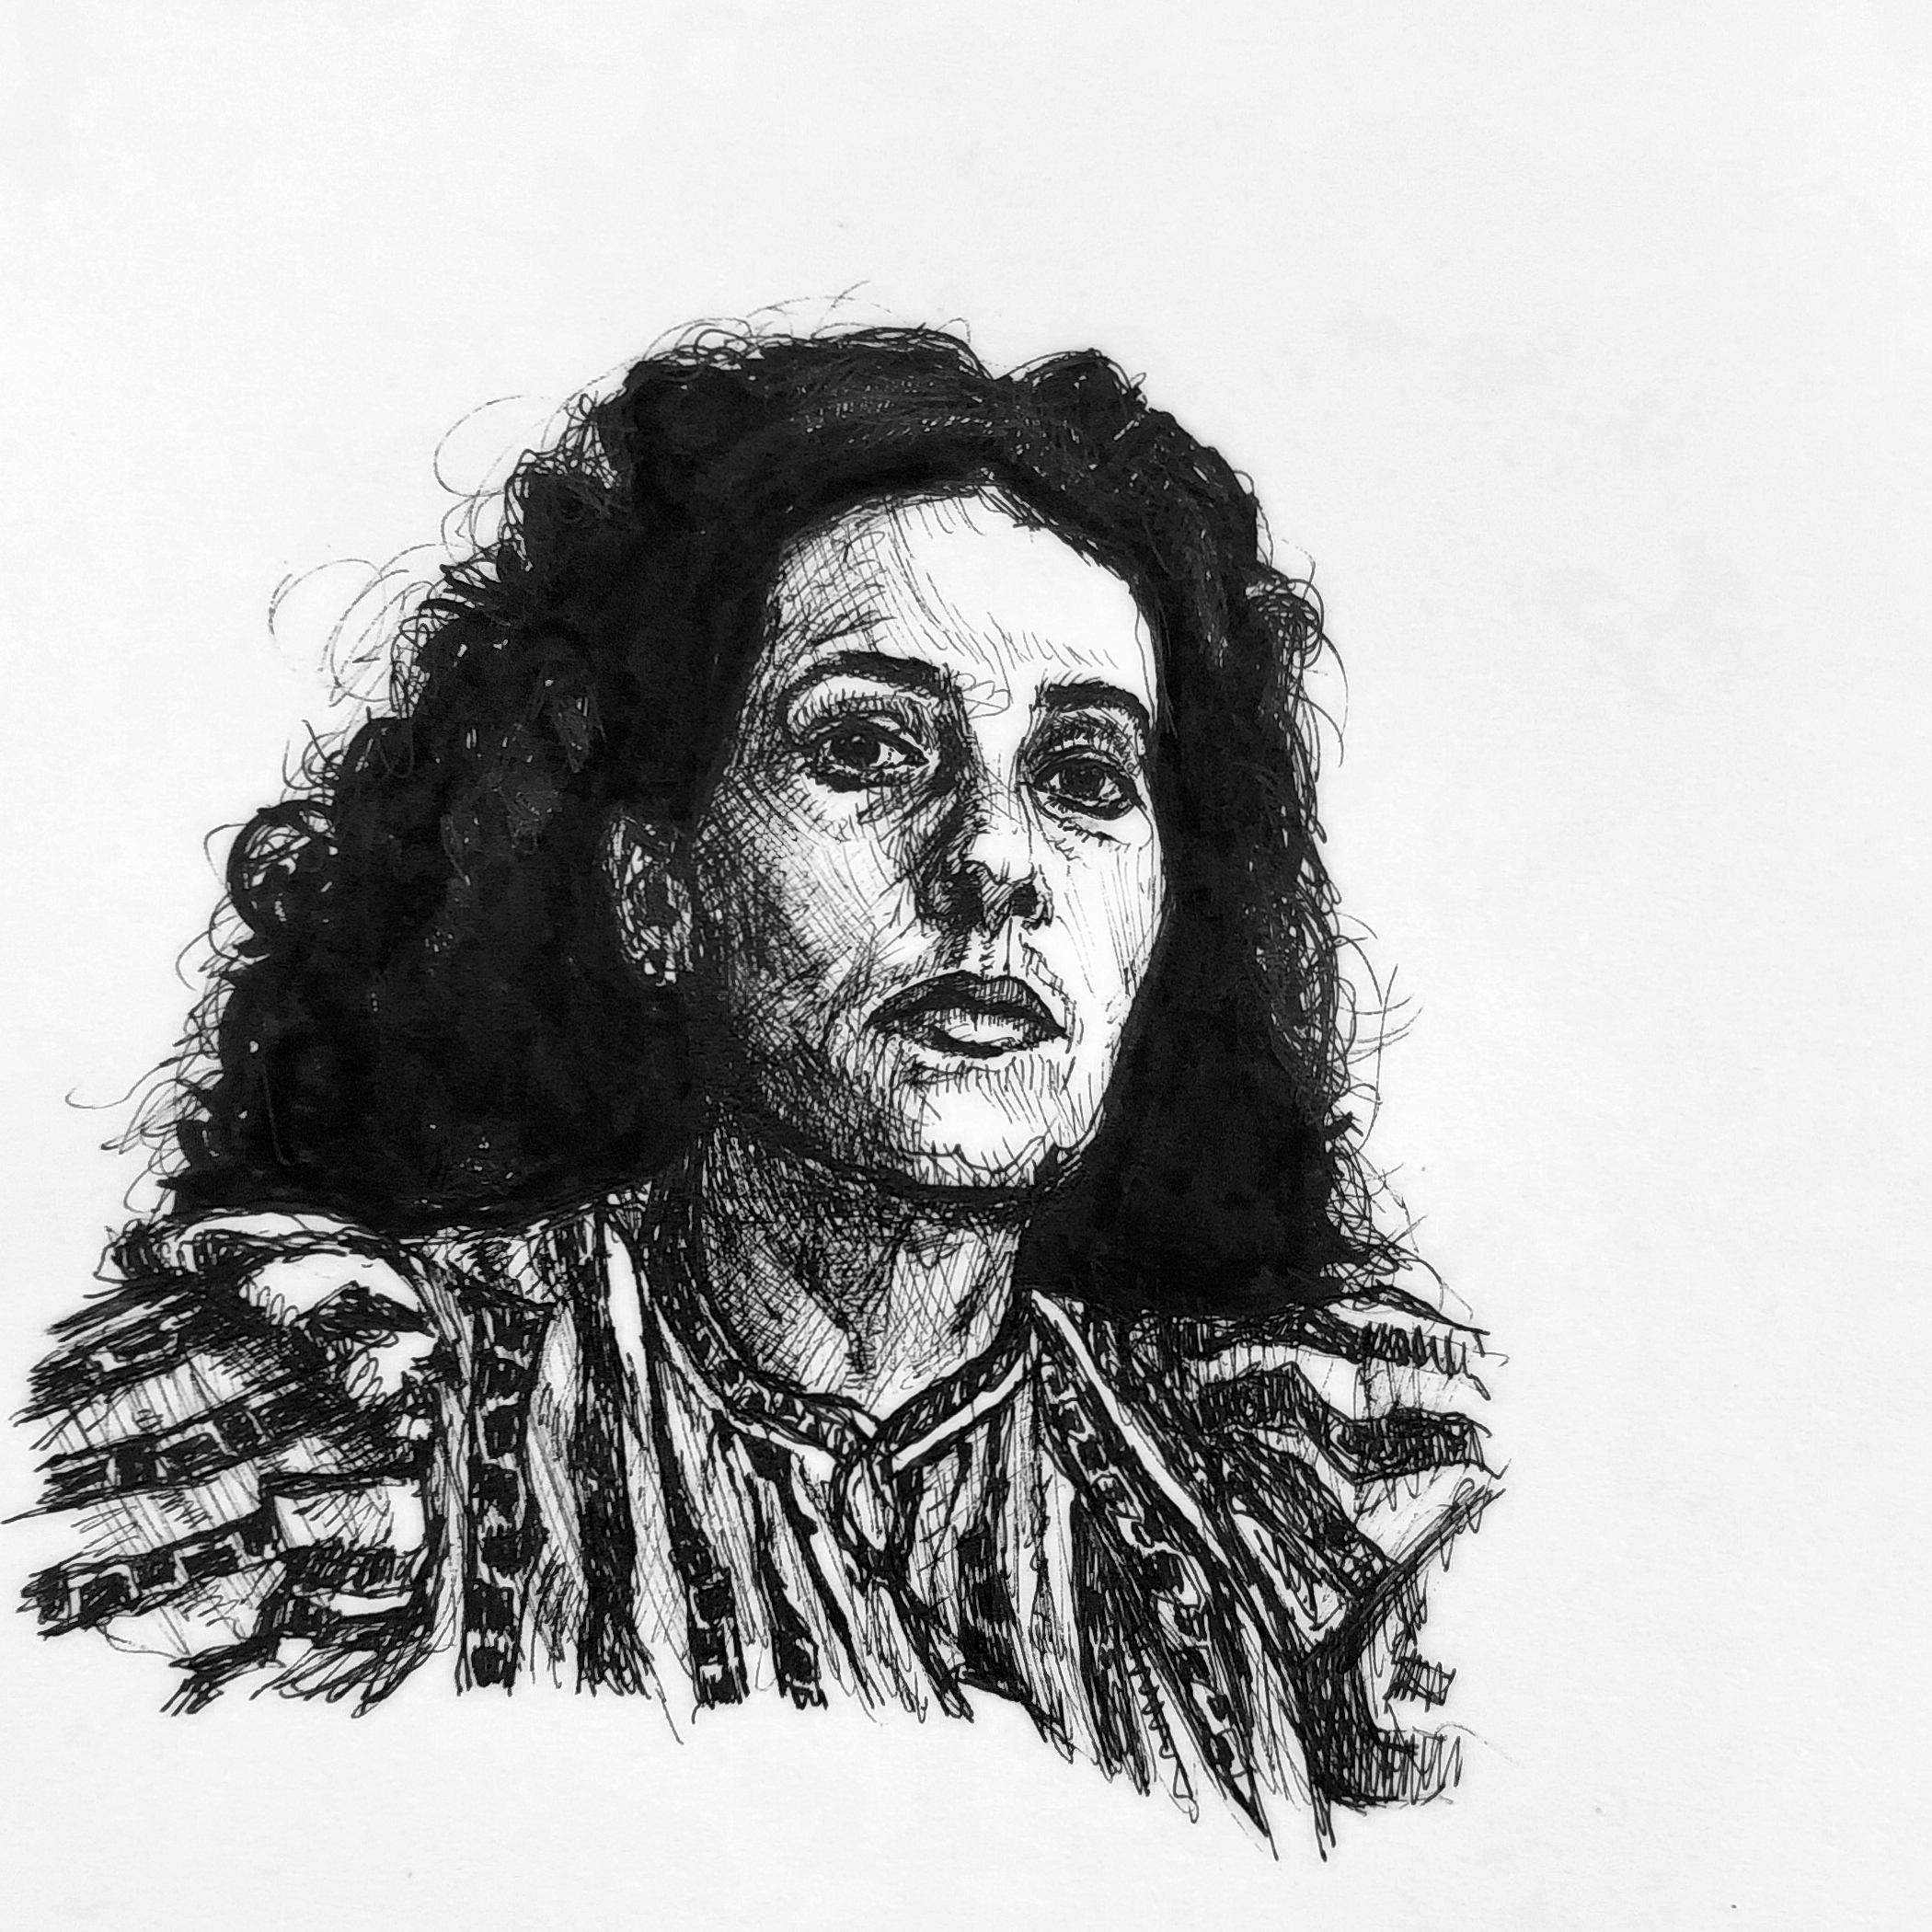 leonora carrington - A crude pen sketch of the marvelous Leonora Carrington (1917-2011), a surrealist writer and painter whom I deeply admire.